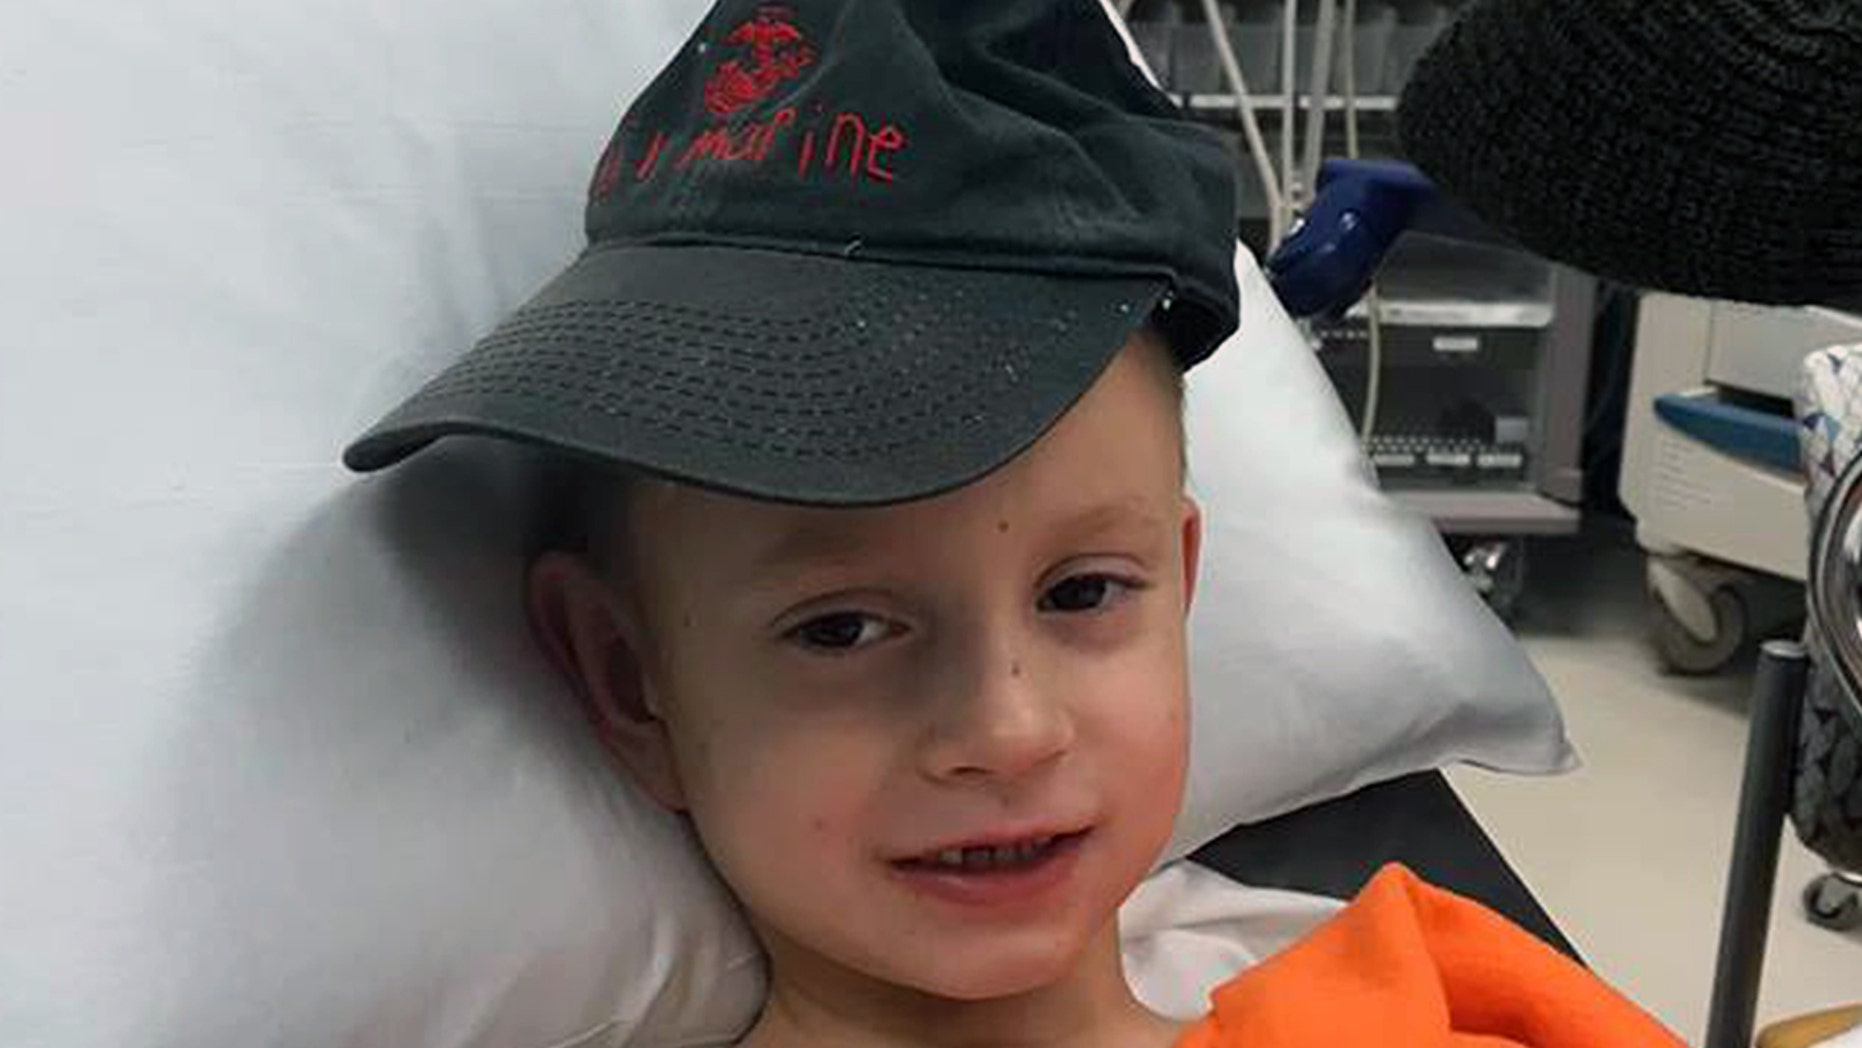 Titus Everett, 6, of Conway, Arkansas, survived after being struck and dejected by a mid-size SUV in a parking lot Sunday after church. His relatives are beholden to a village and God for assisting save his life.